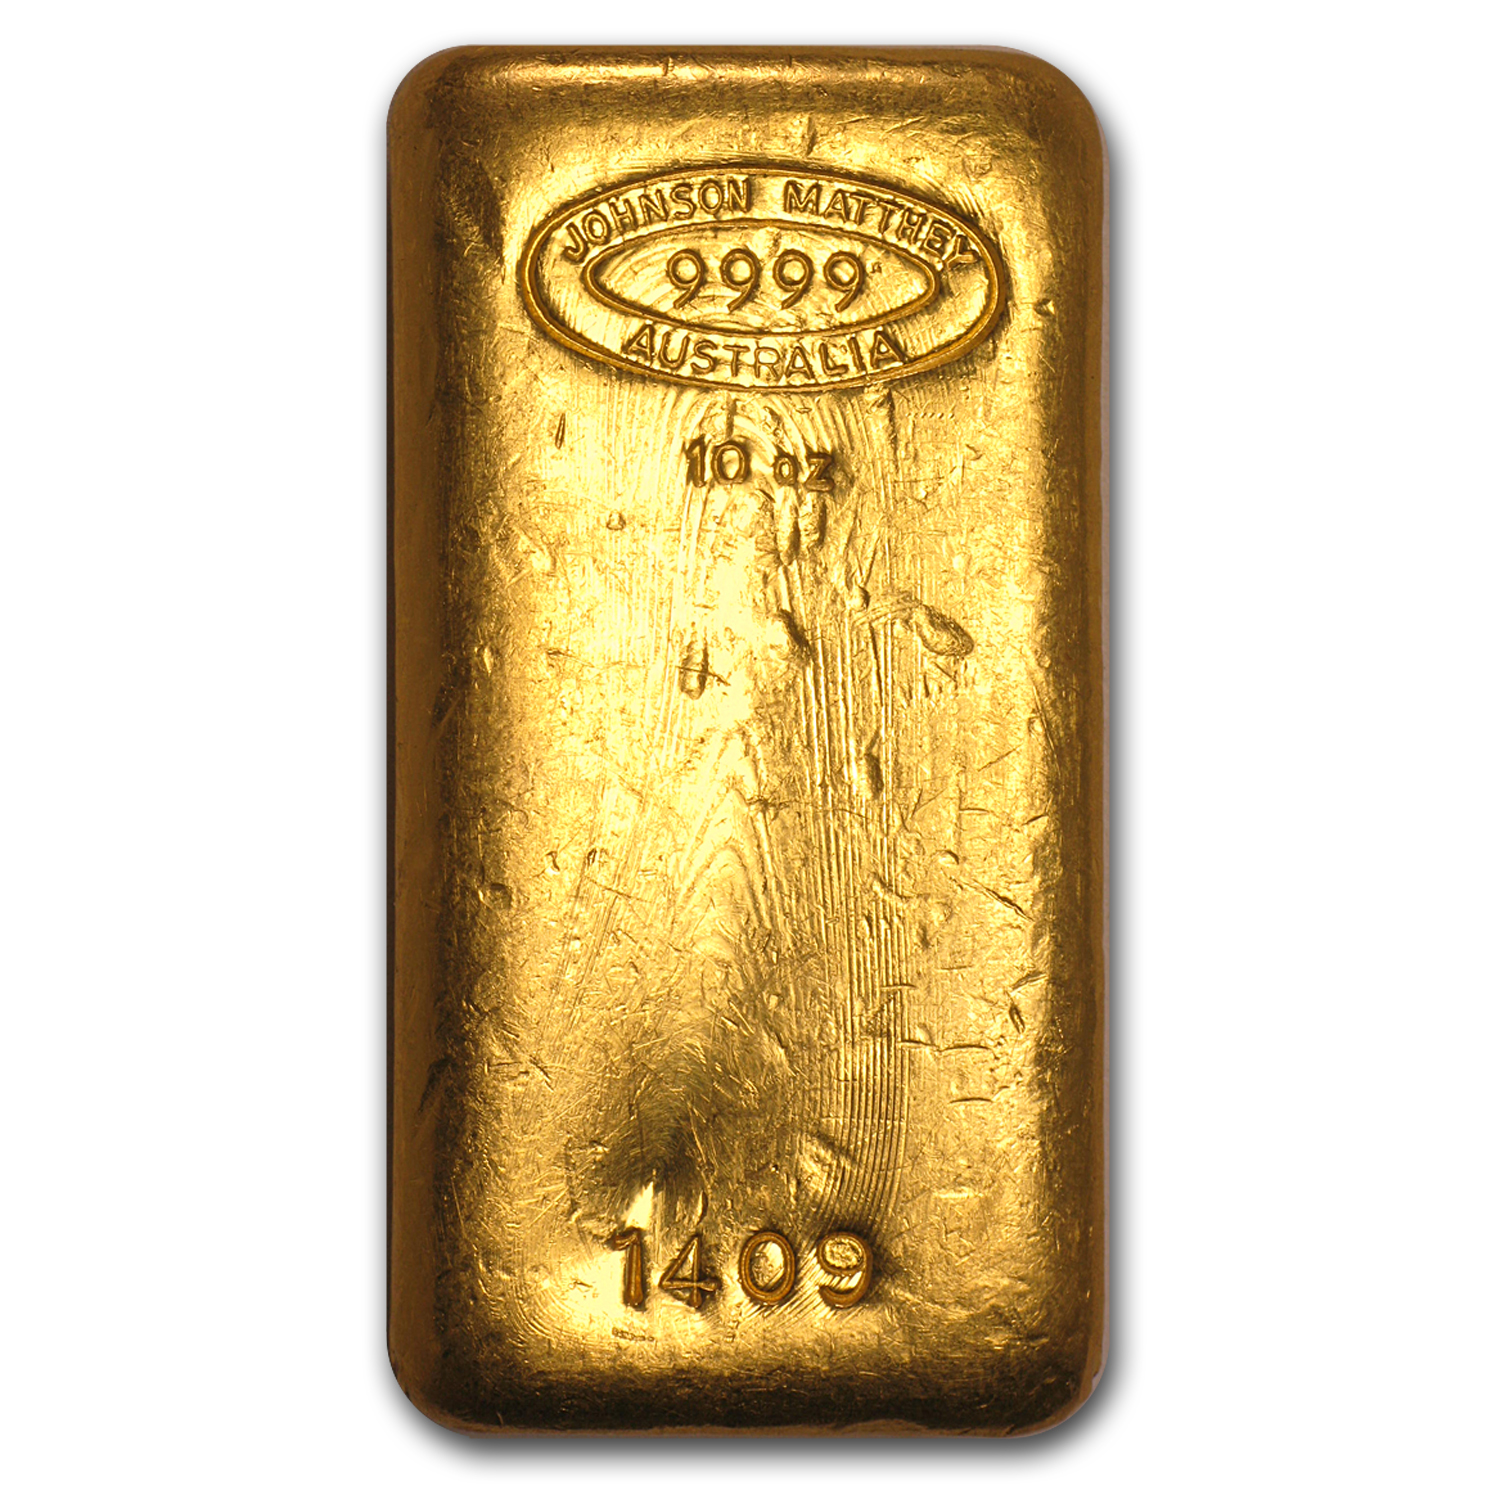 10 oz Gold Bar - Johnson Matthey (Poured, Australia)